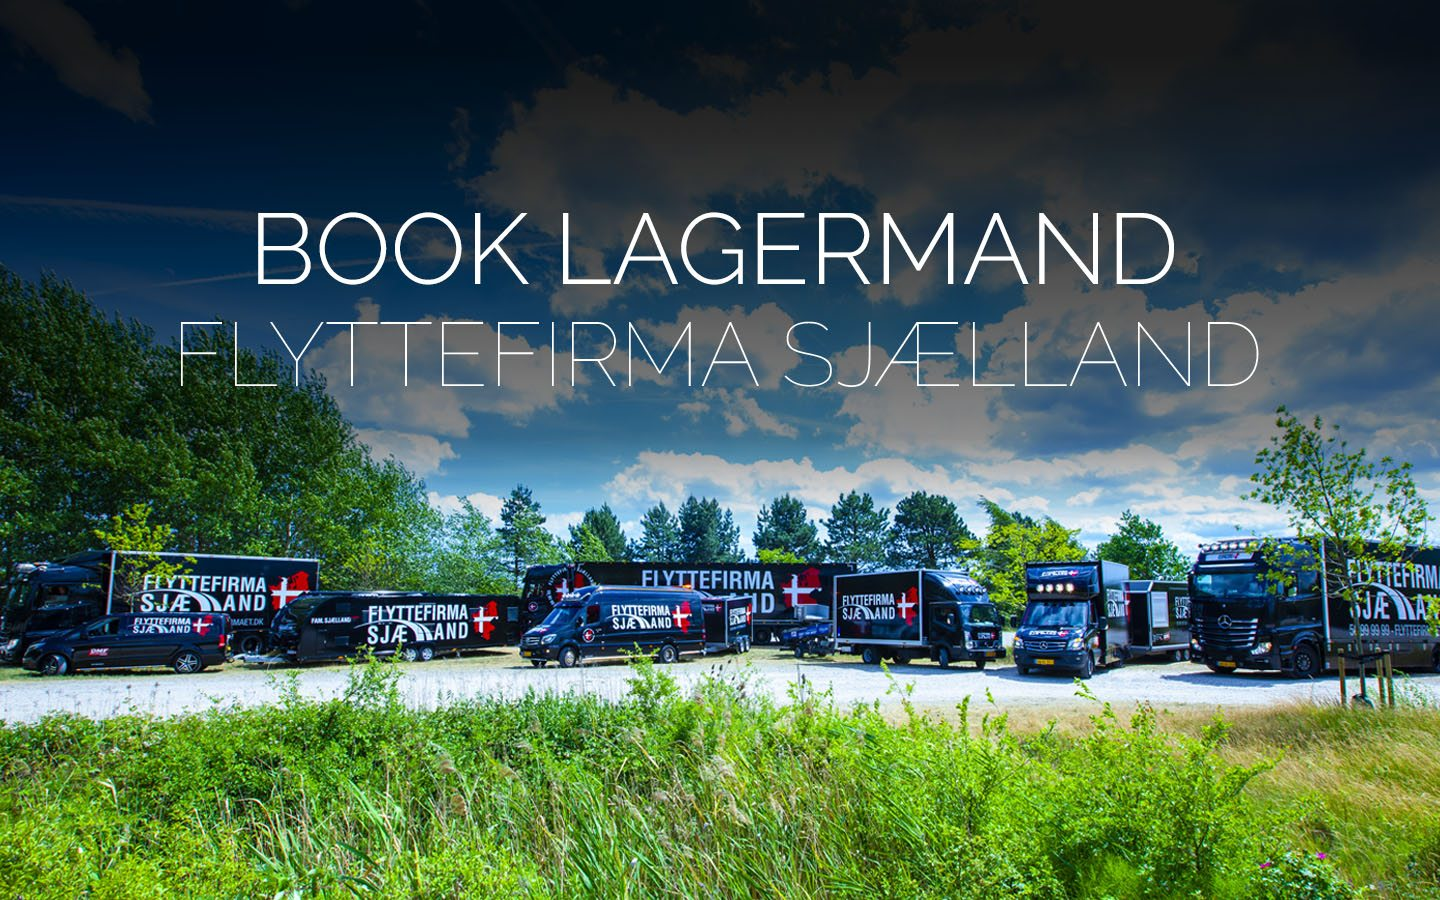 Flyttefirmaet cover book lagermand